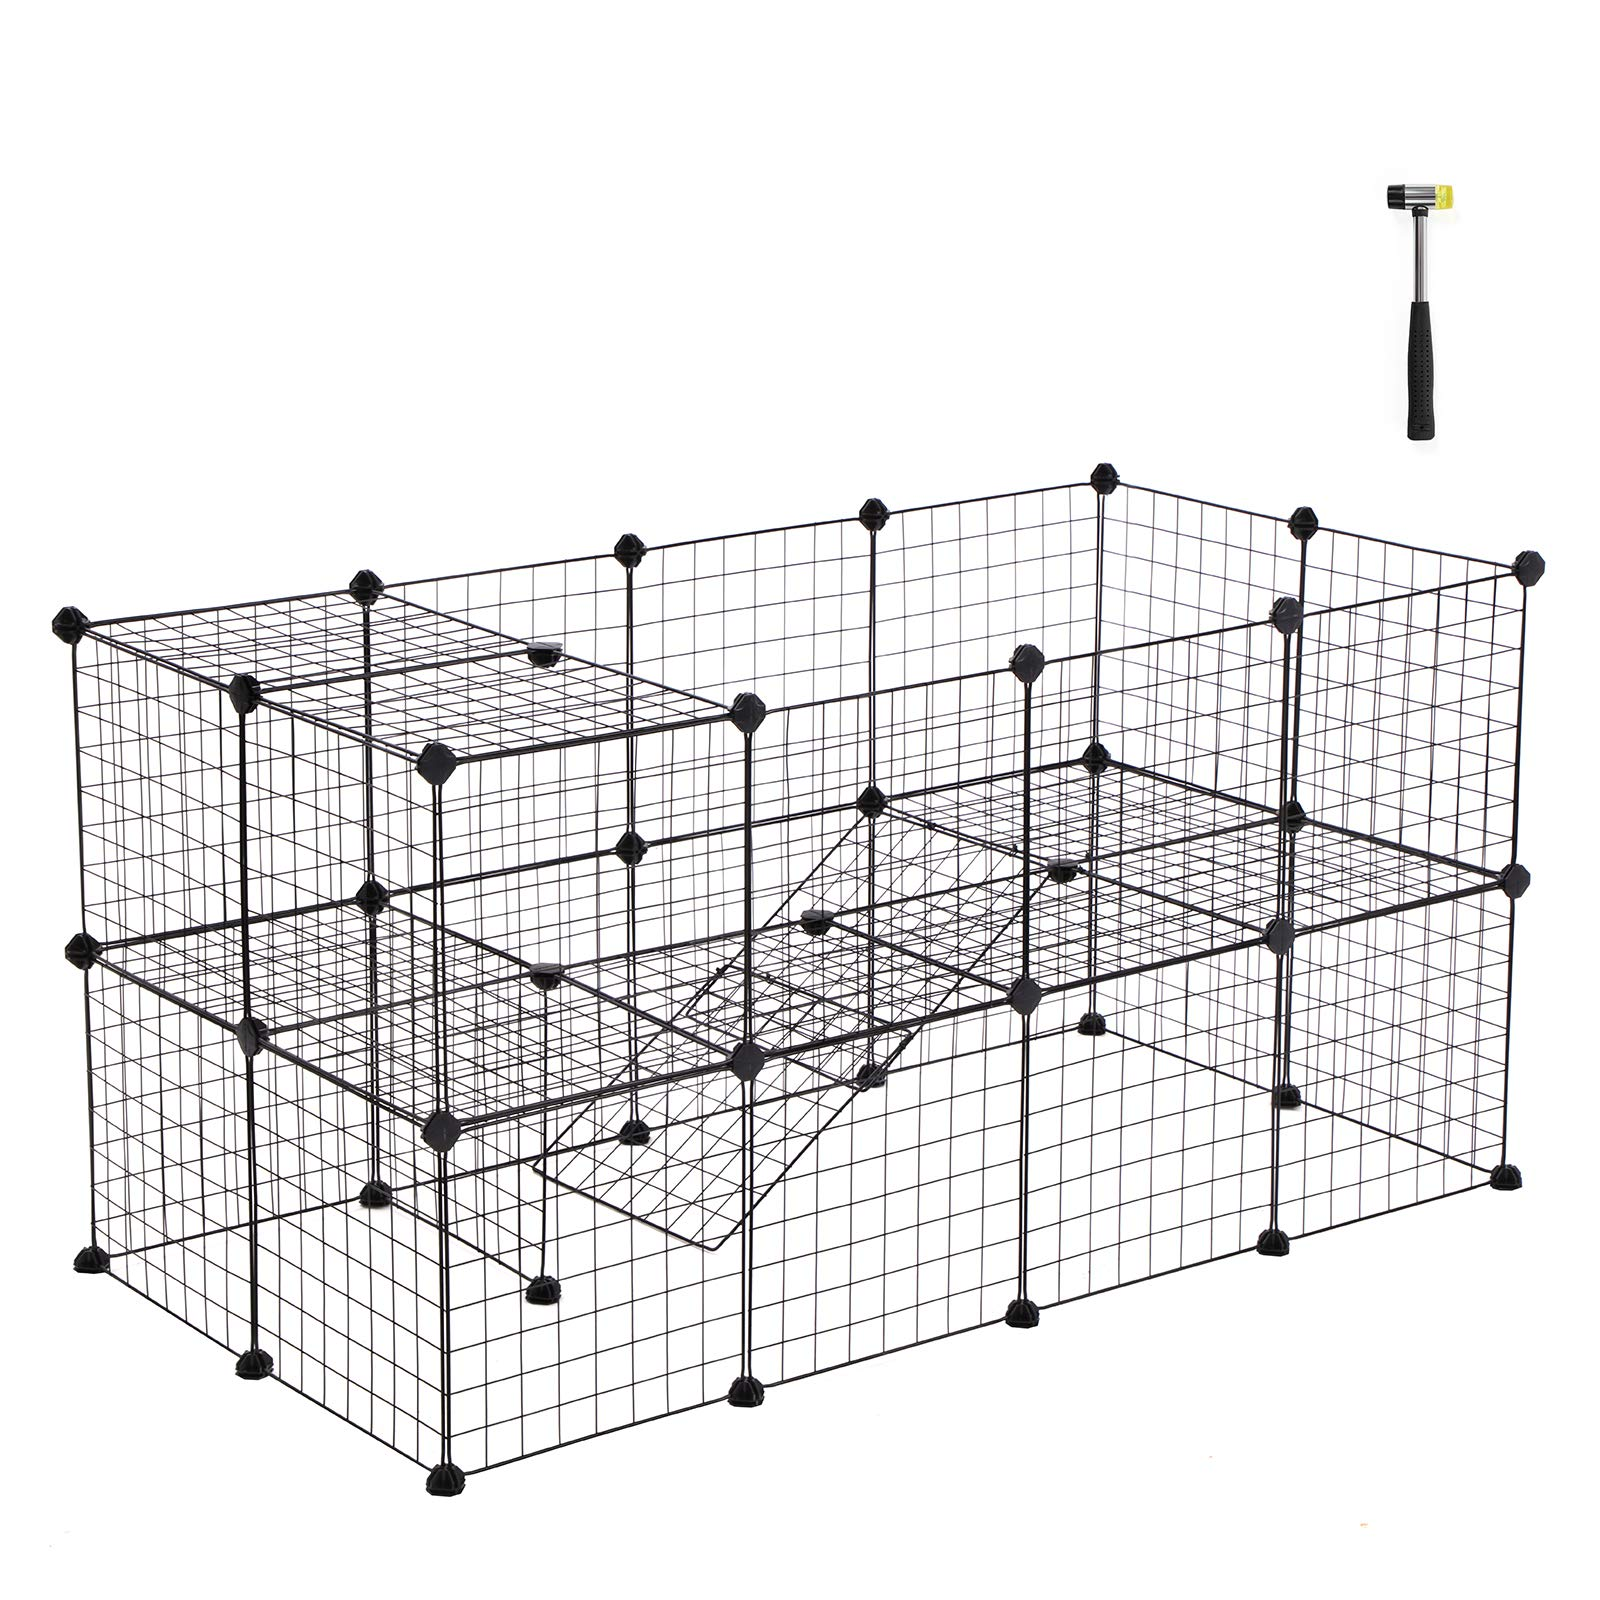 SONGMICS Pet Playpen Includes Cable Ties, Metal Wire Apartment-Style Two-Storey Bunny Fence and Kennel, Comfortable Pet Premium Villa for Guinea Pigs, Bunnies, Rabbits,Puppies,Indoor Upgrade ULPI02H by SONGMICS